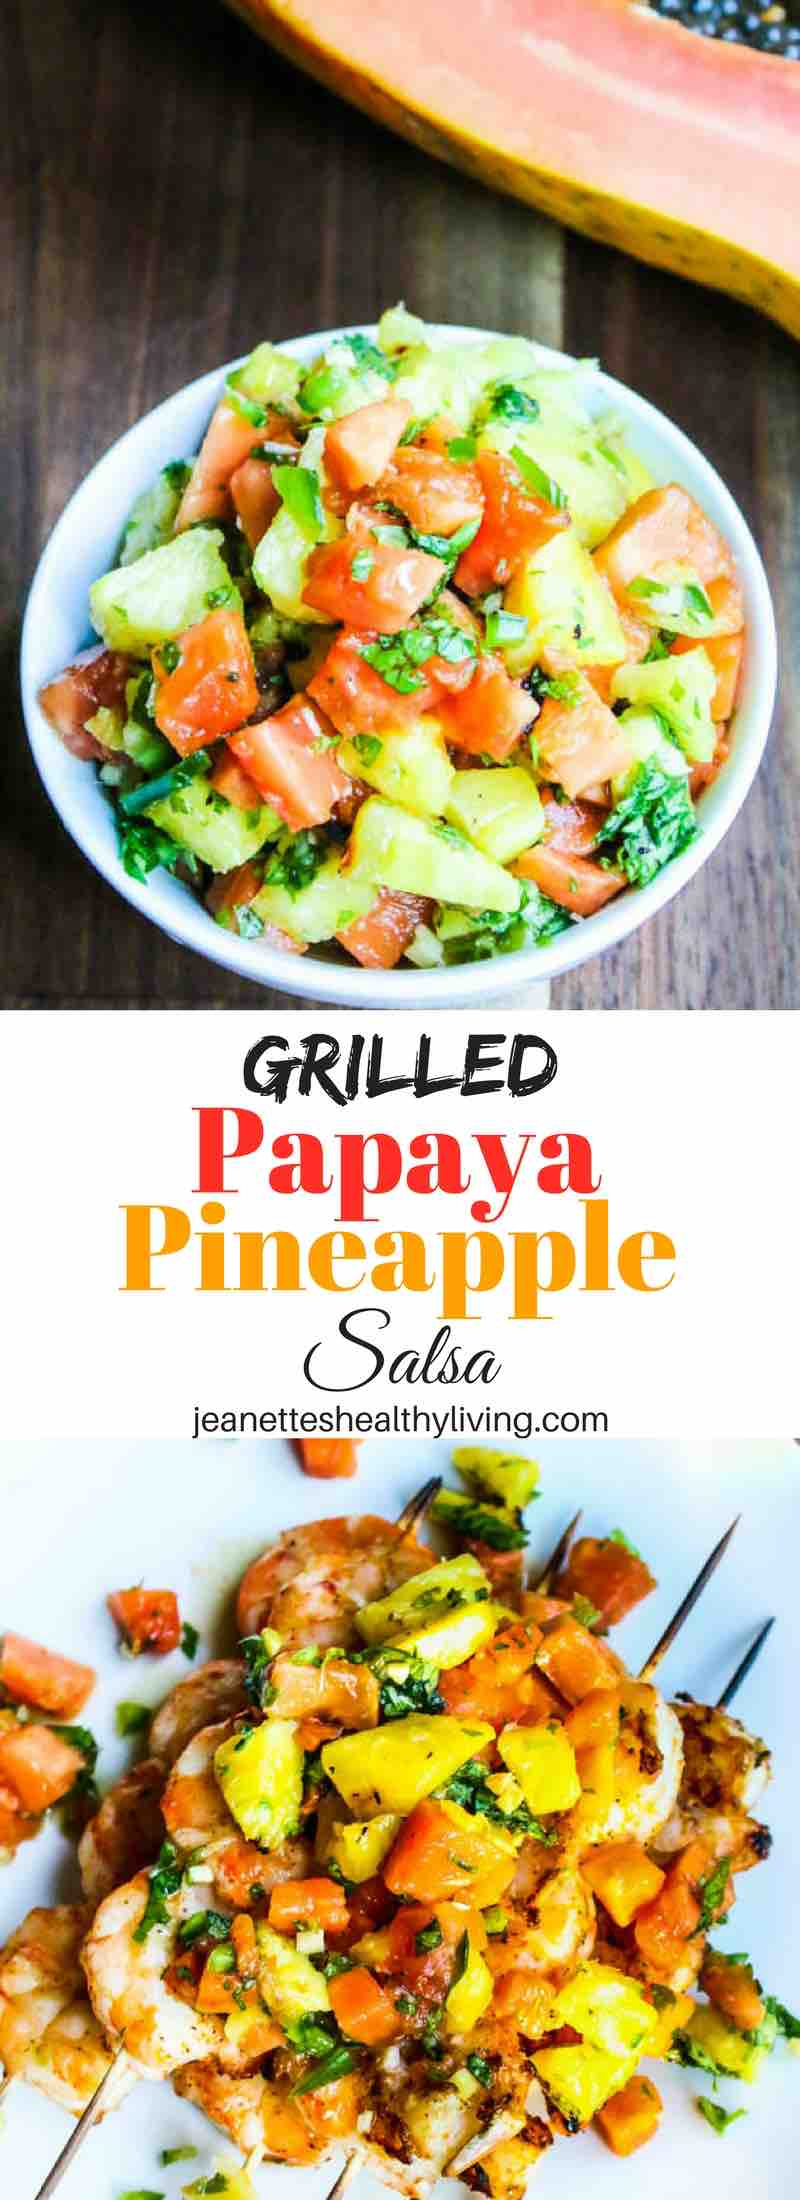 Grilled Papaya Pineapple Salsa - grilling fruit concentrates the sugar and flavor - serve this sweet salsa over grilled shrimp, fish or chicken